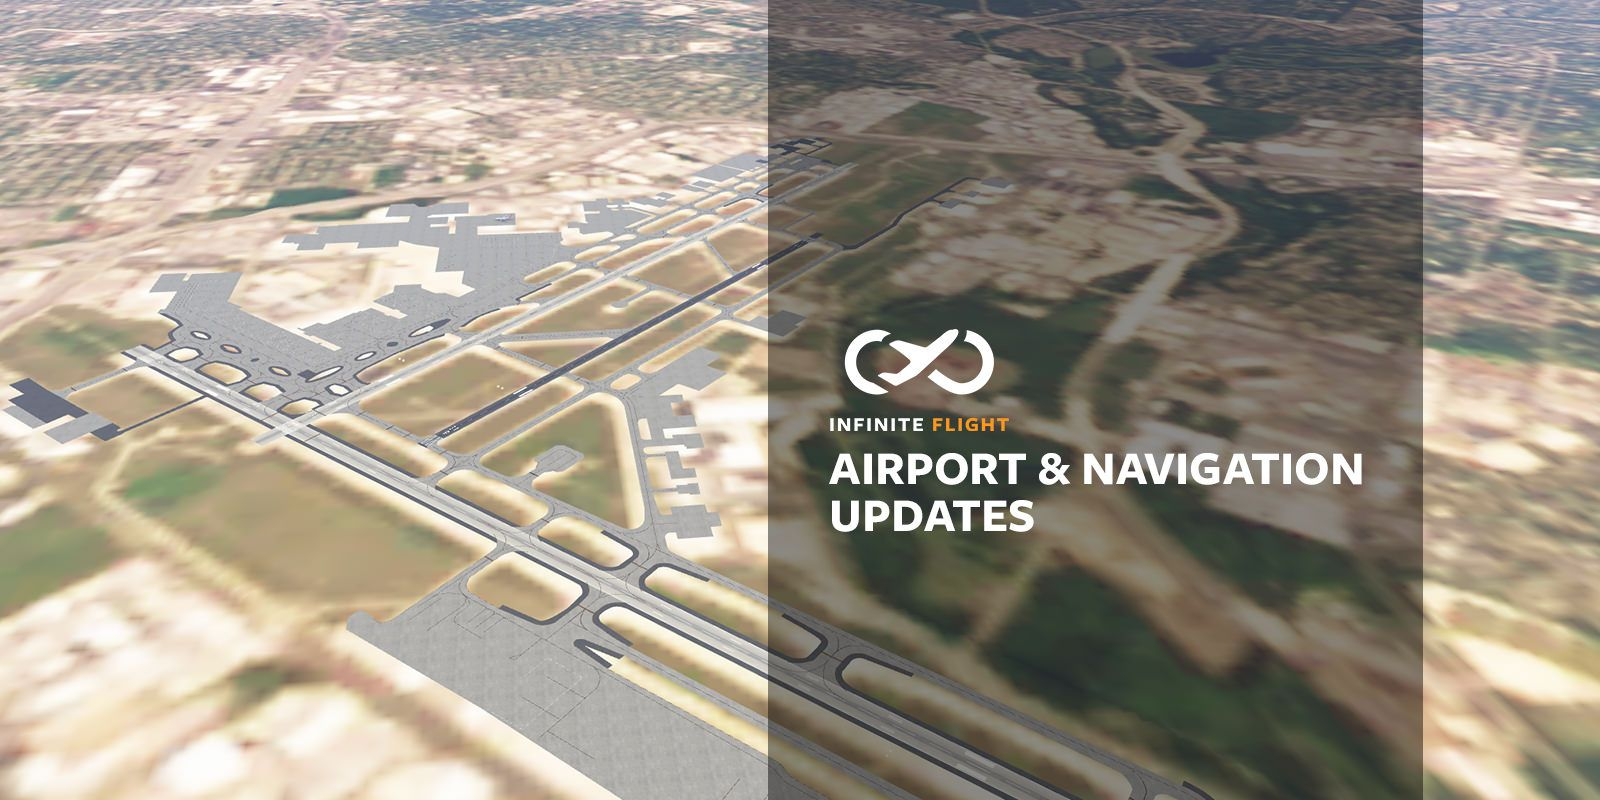 Airport and Navigation Updates - May 2020